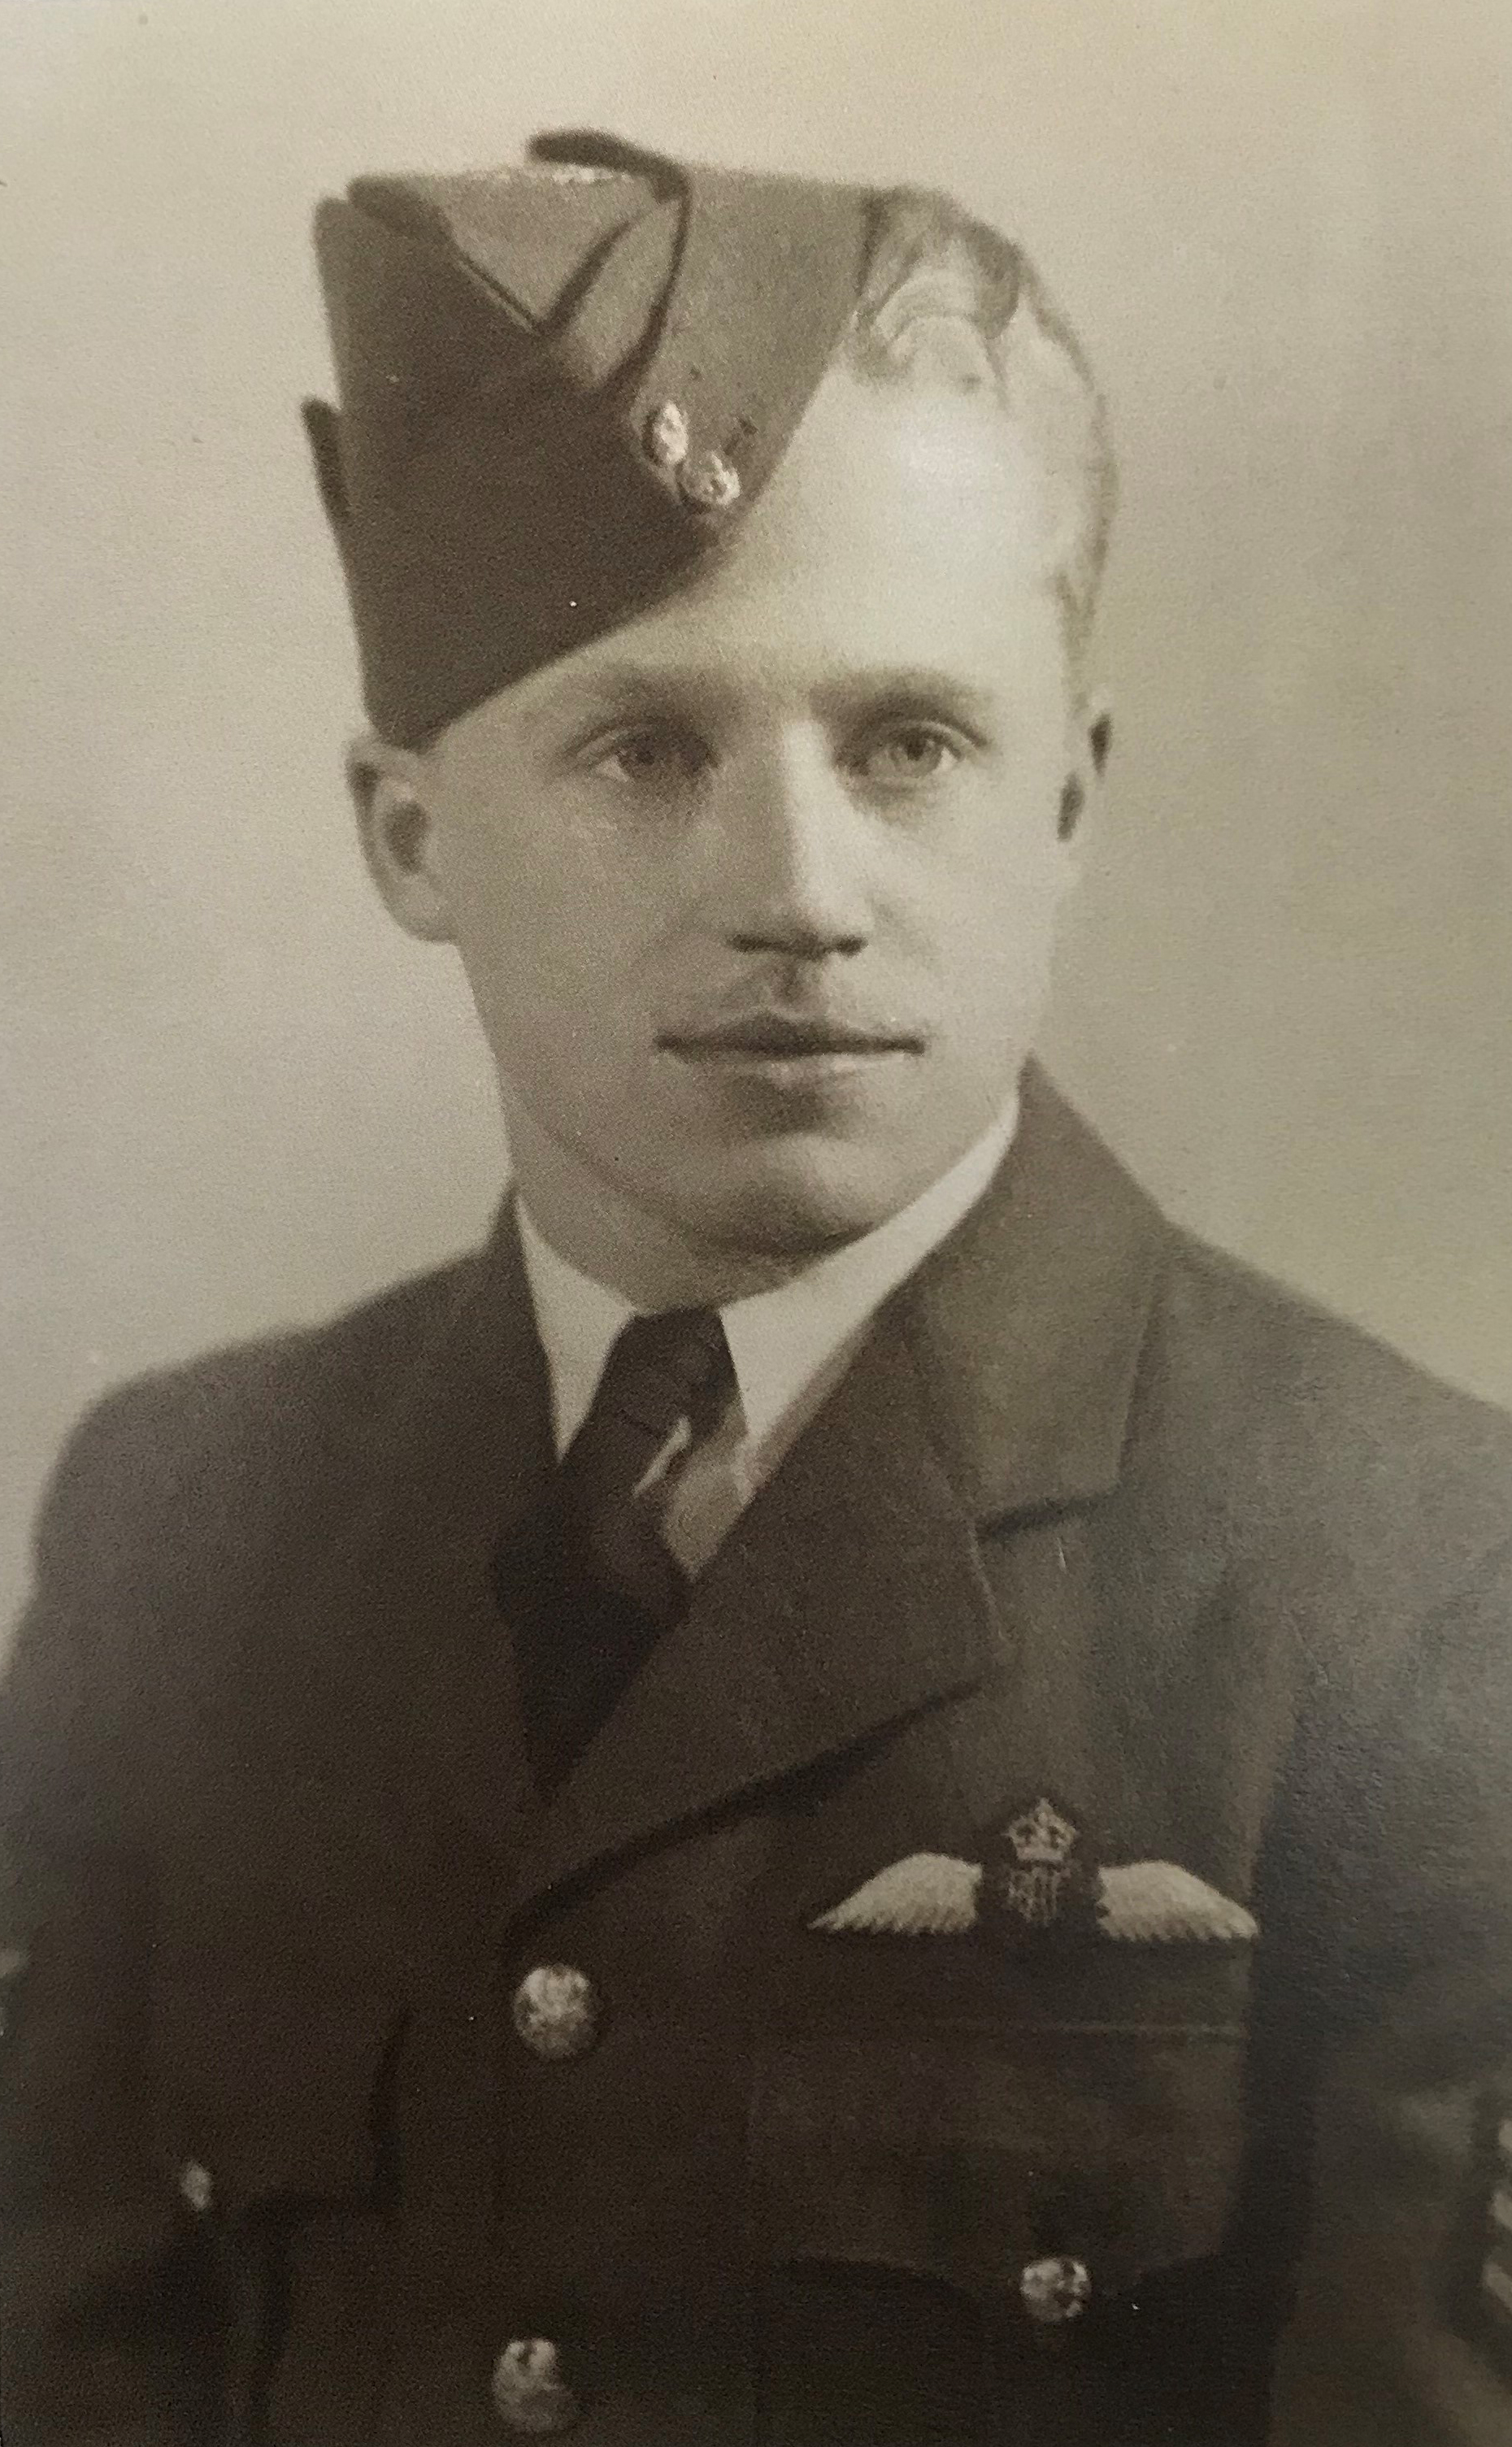 La photo de finissant du pilote Jean Cauchy, lors de l'obtention de son brevet, en 1944. PHOTO : Fournie par Jean Cauchy